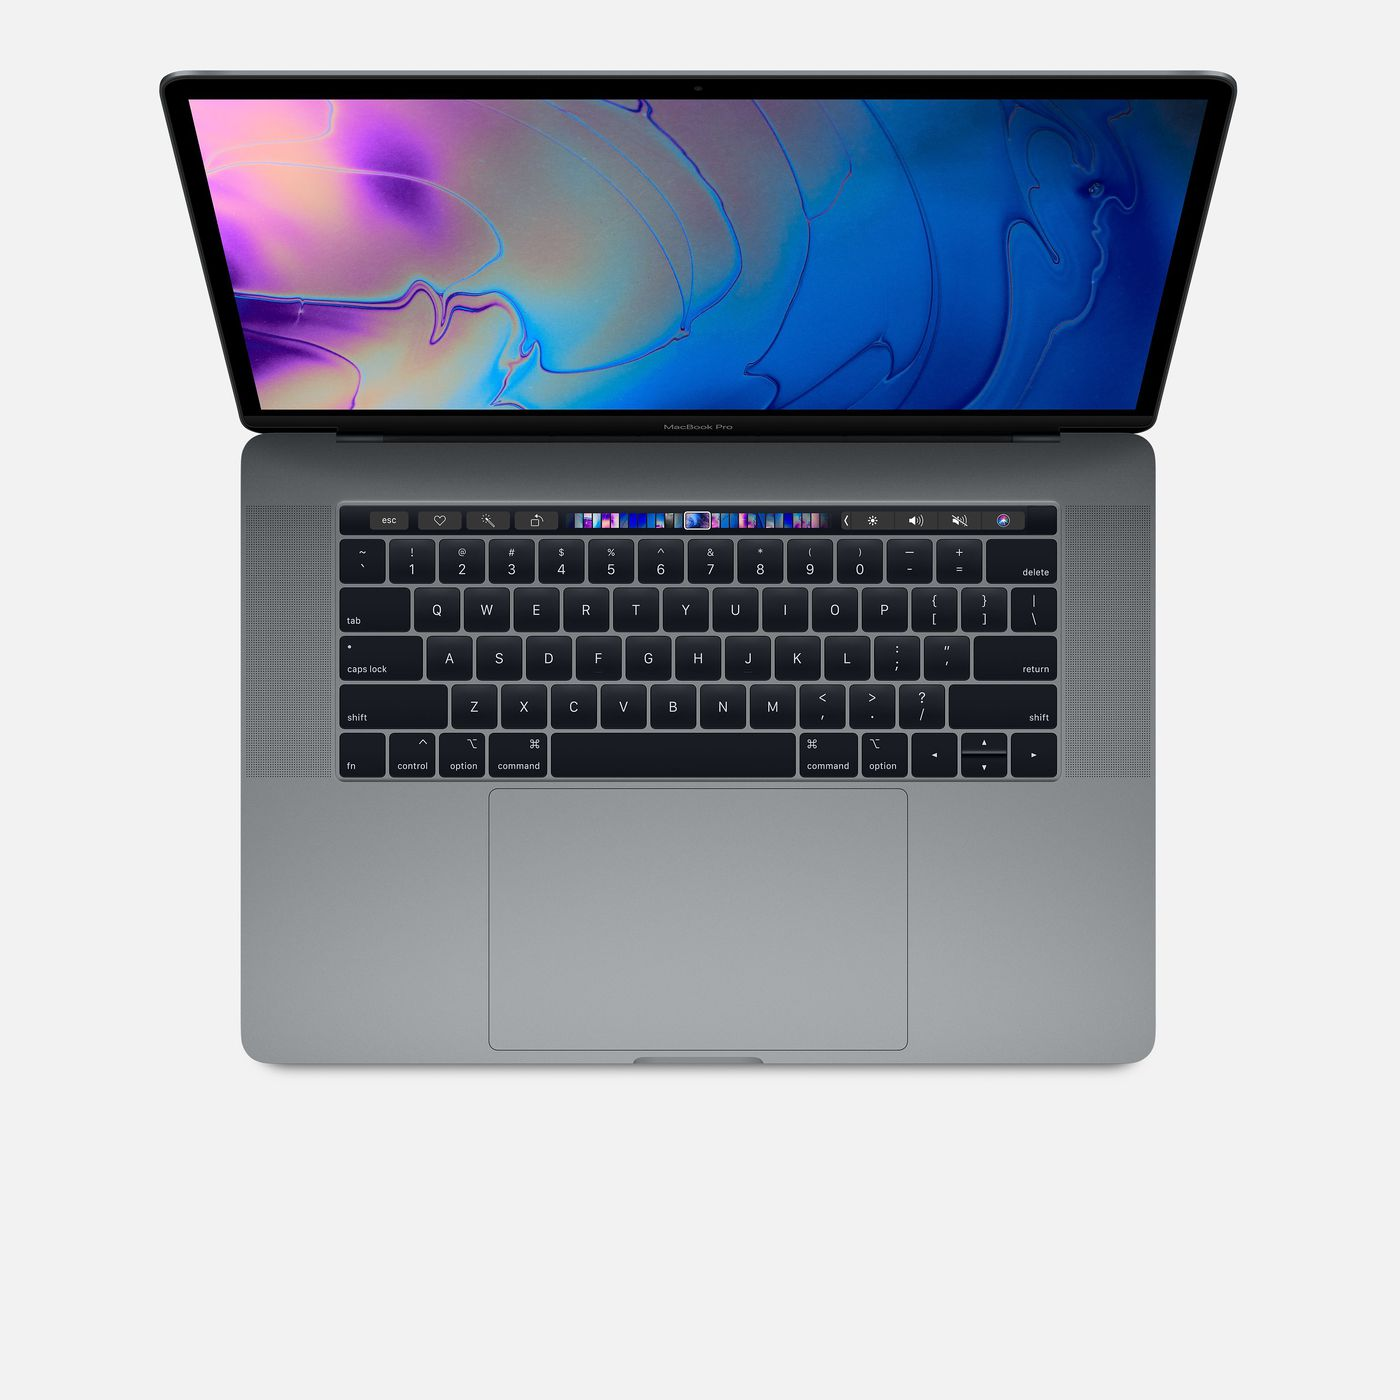 theverge.com - Chaim Gartenberg - Apple's most expensive MacBook Pro now costs $6,700